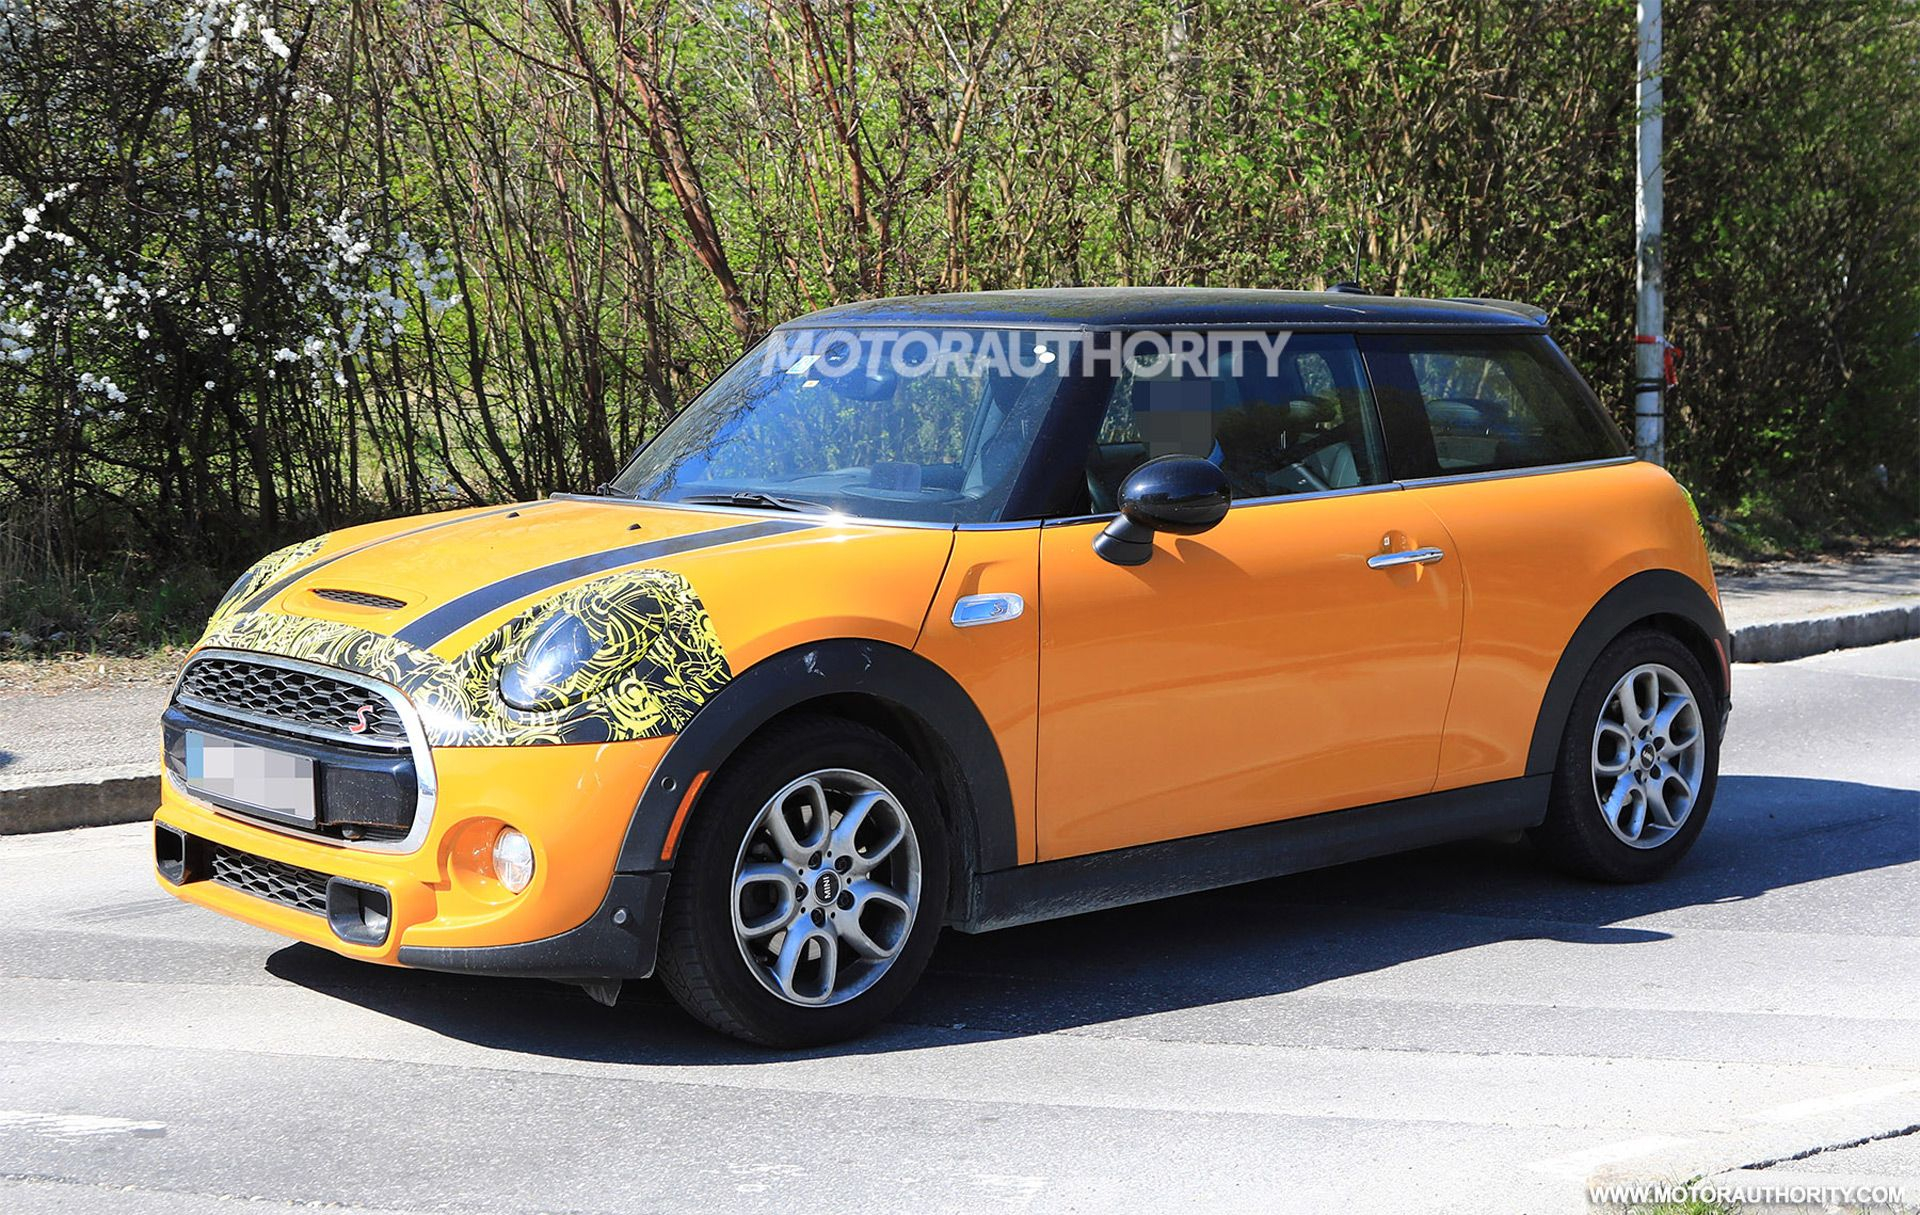 55 All New 2020 Spy Shots Mini Countryman Specs